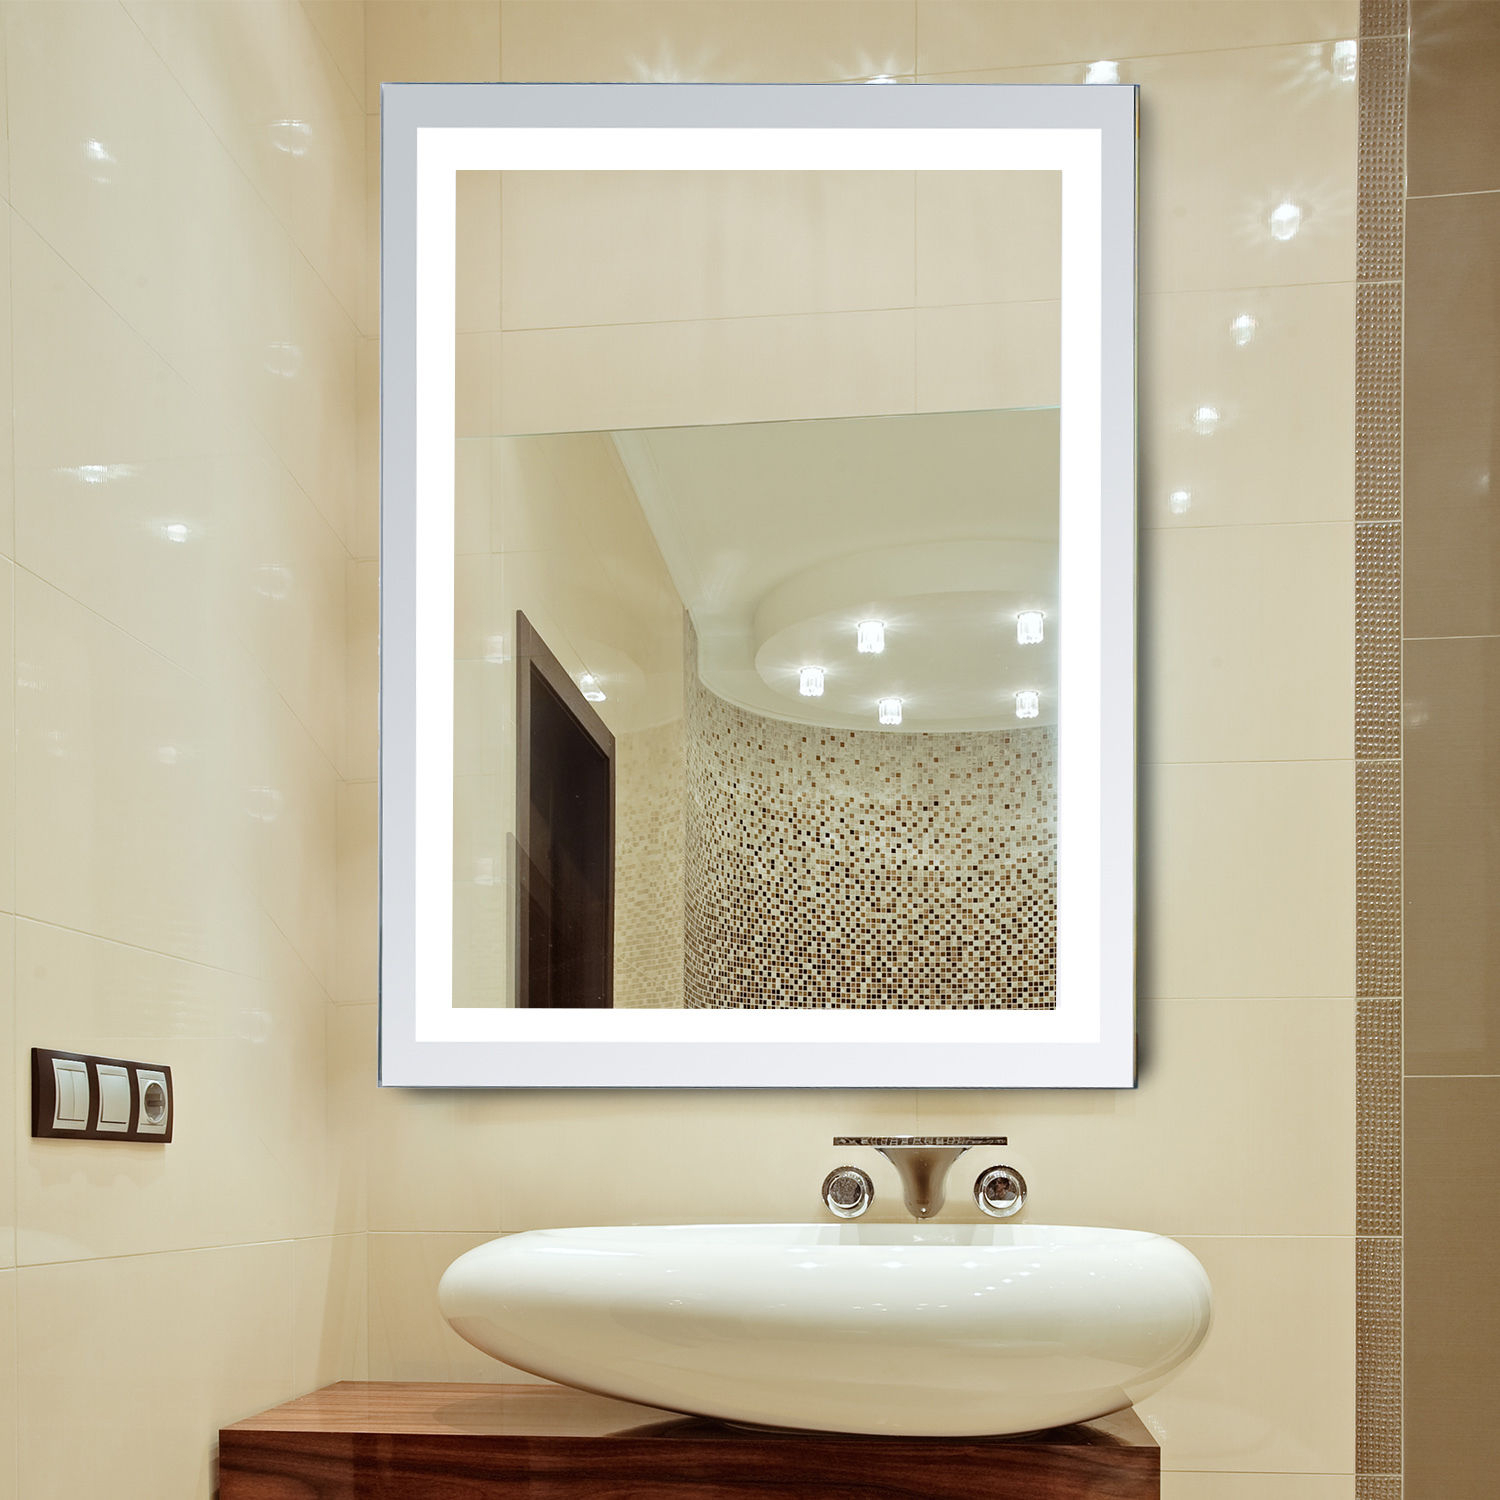 Details About Led Illuminated Bathroom Wall Mirrors With Lights Modern Makeup Vanity Mirror With Wall Mirrors (View 19 of 20)